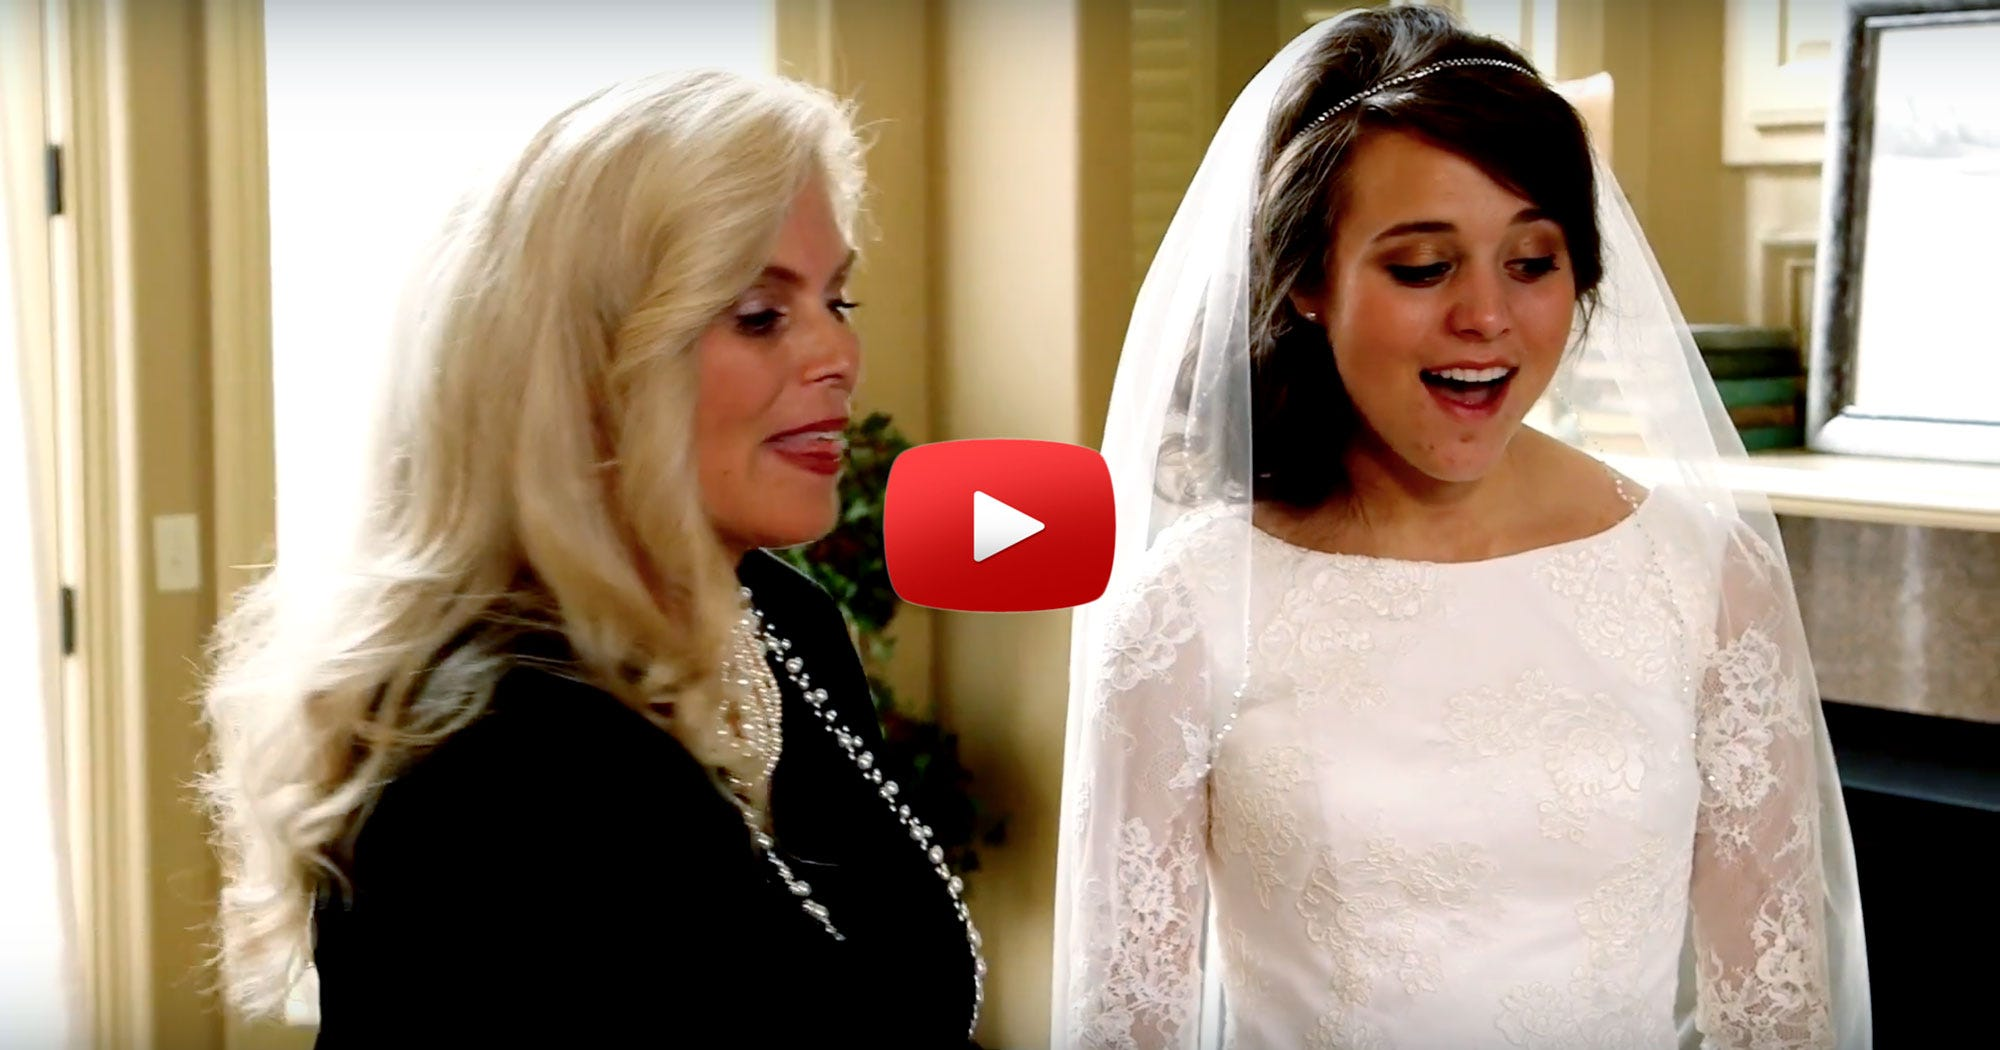 Duggar wedding dress tradition jinger michelle grandma for Grandmother dresses for grandson s wedding